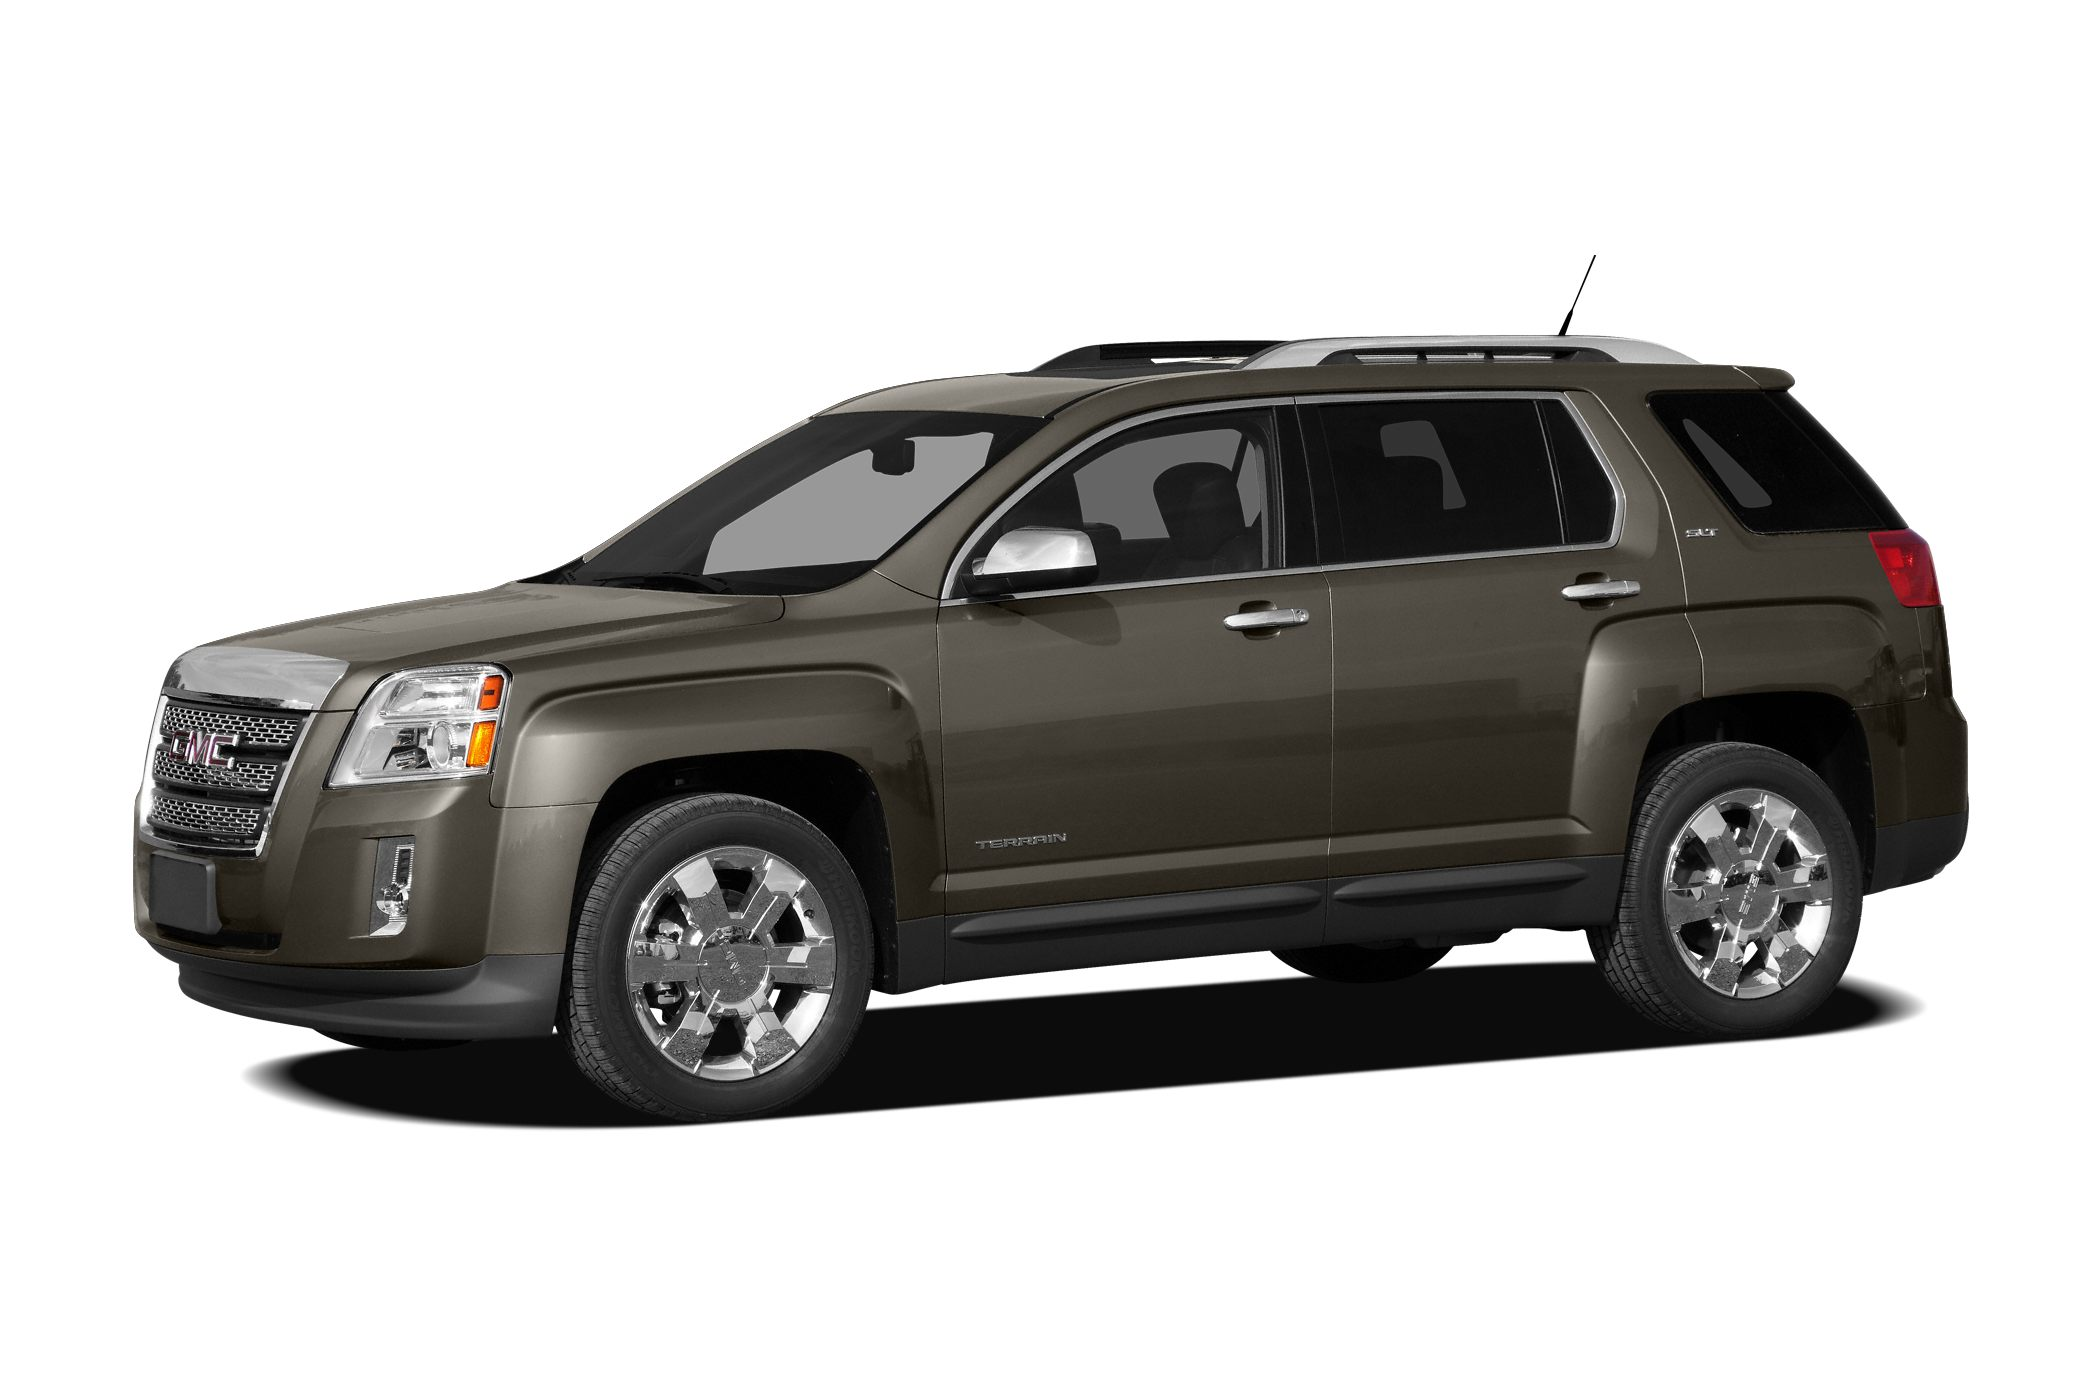 2011 GMC Terrain SLT-2 SUV for sale in Brady for $15,950 with 110,076 miles